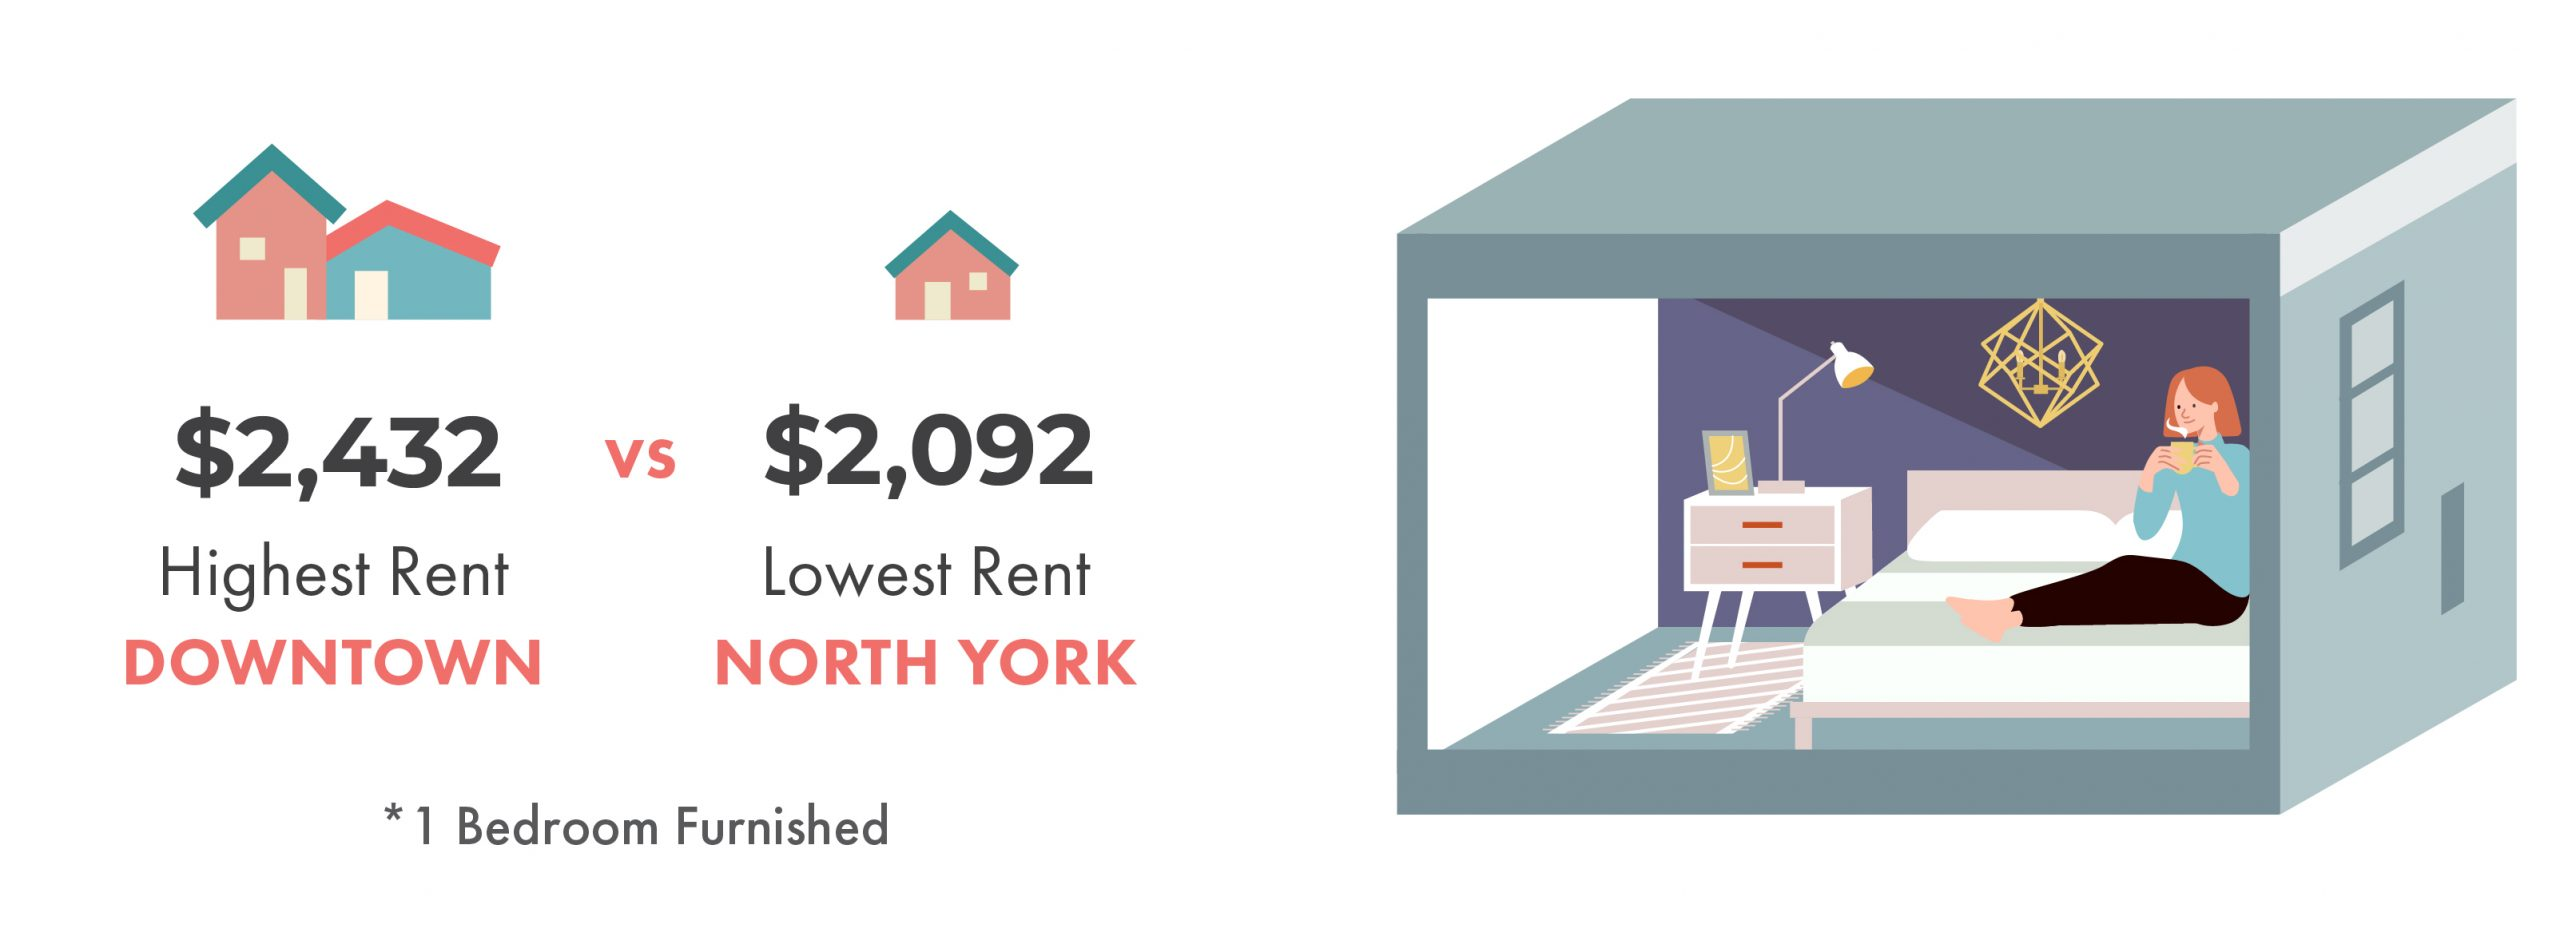 downtown toronto, north york, highest rent, lowest rent